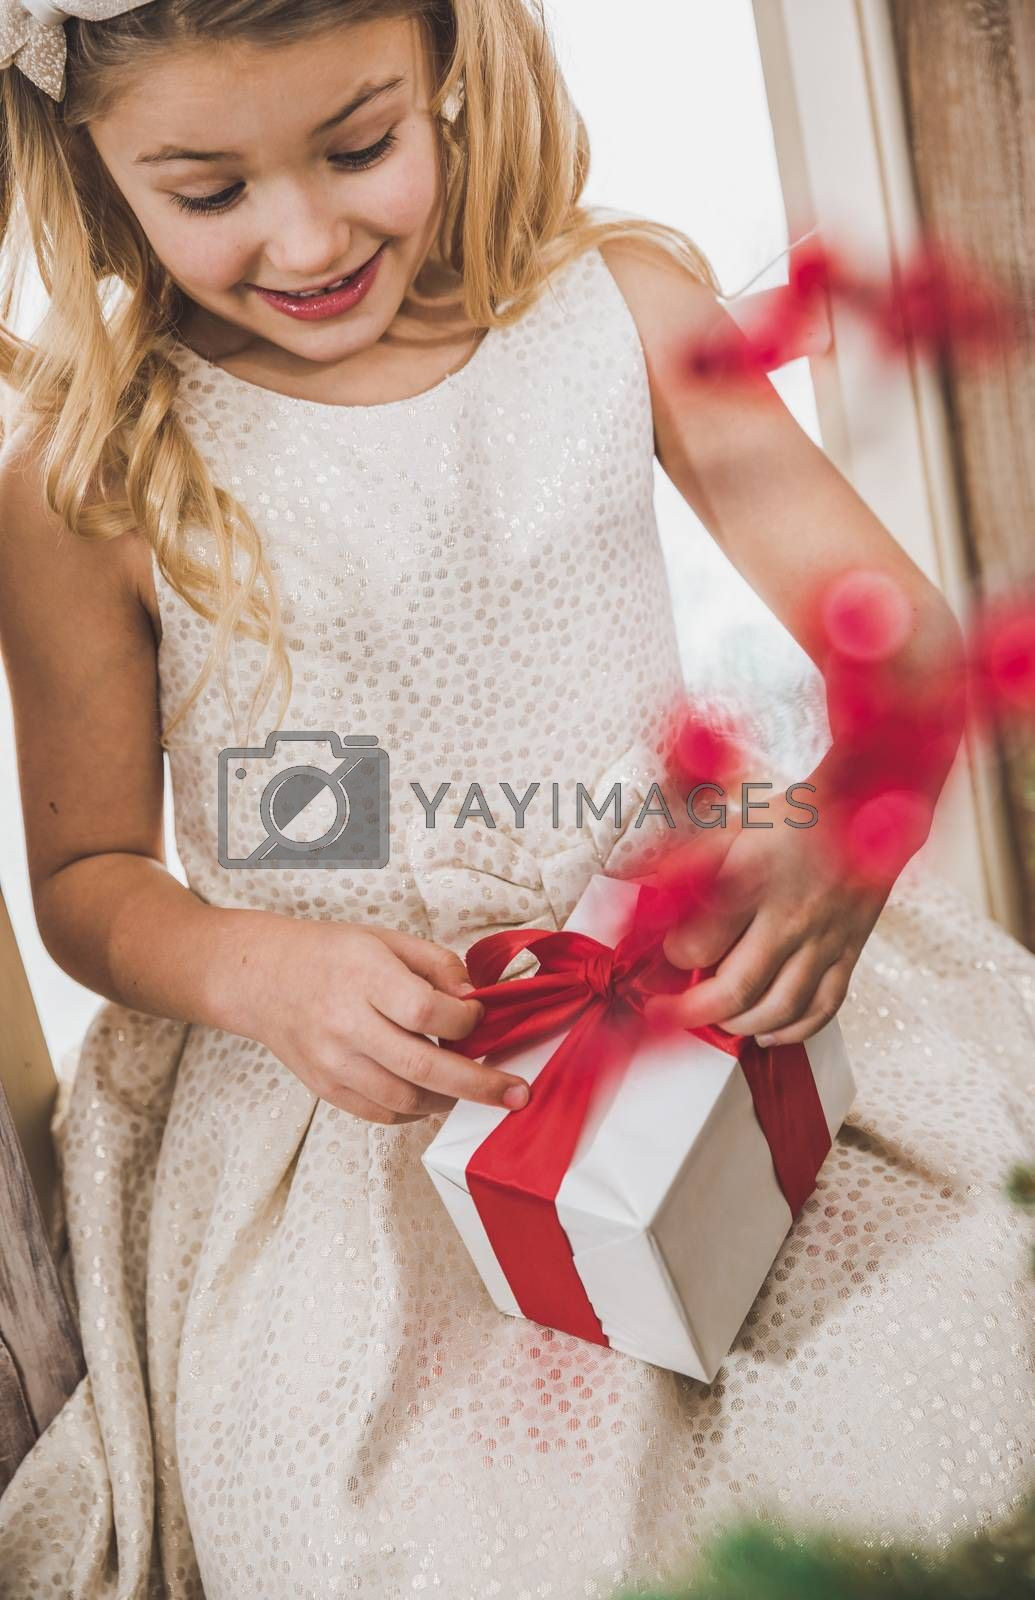 Portrait of cute smiling girl opening gift box